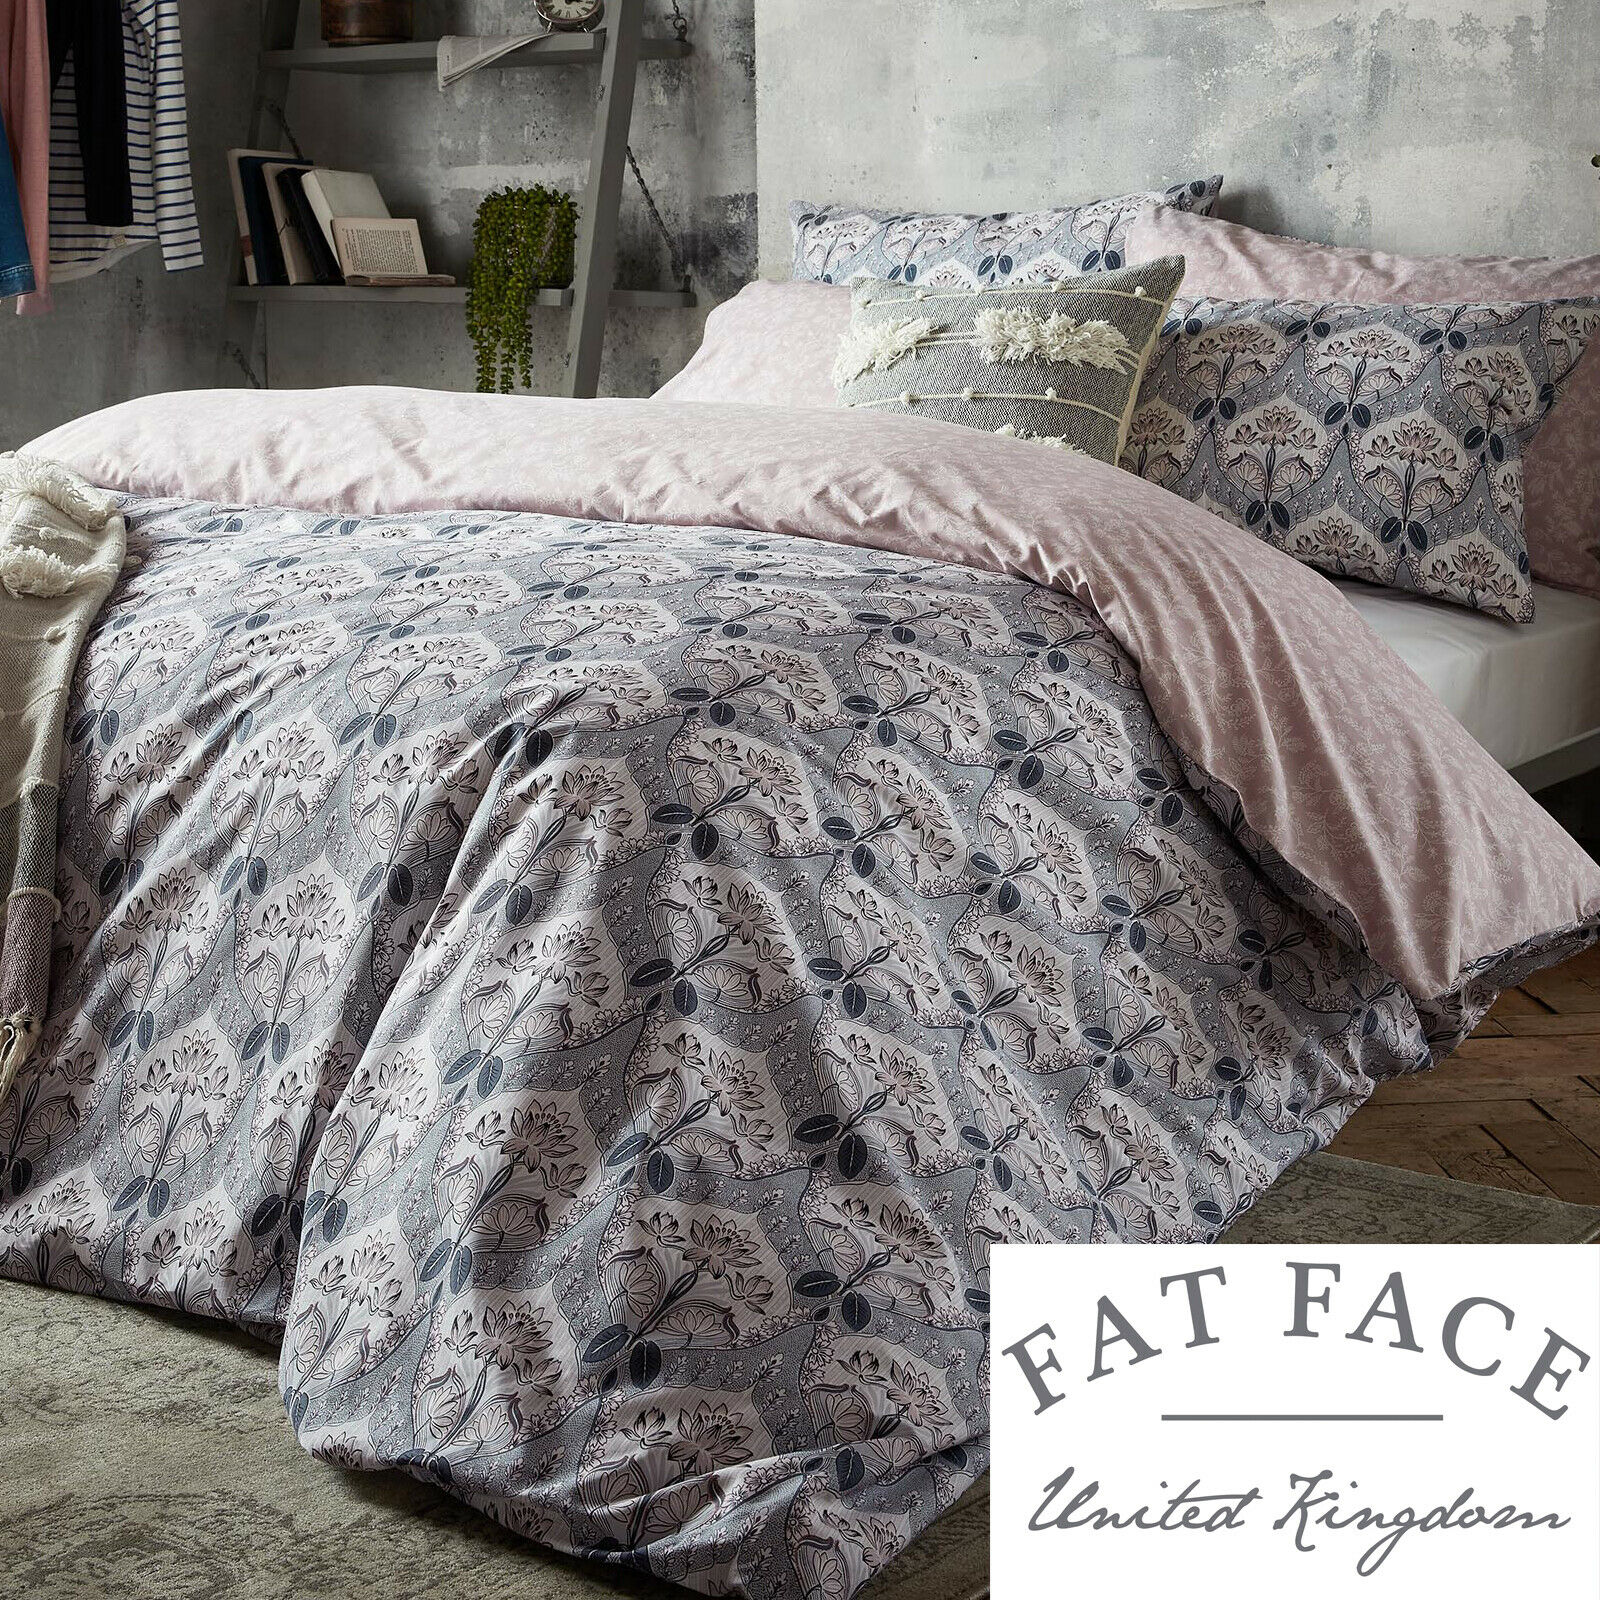 Fat Face Designer Bedding WATERLILIES Floral 100% Cotton Duvet Cover Set Bedding